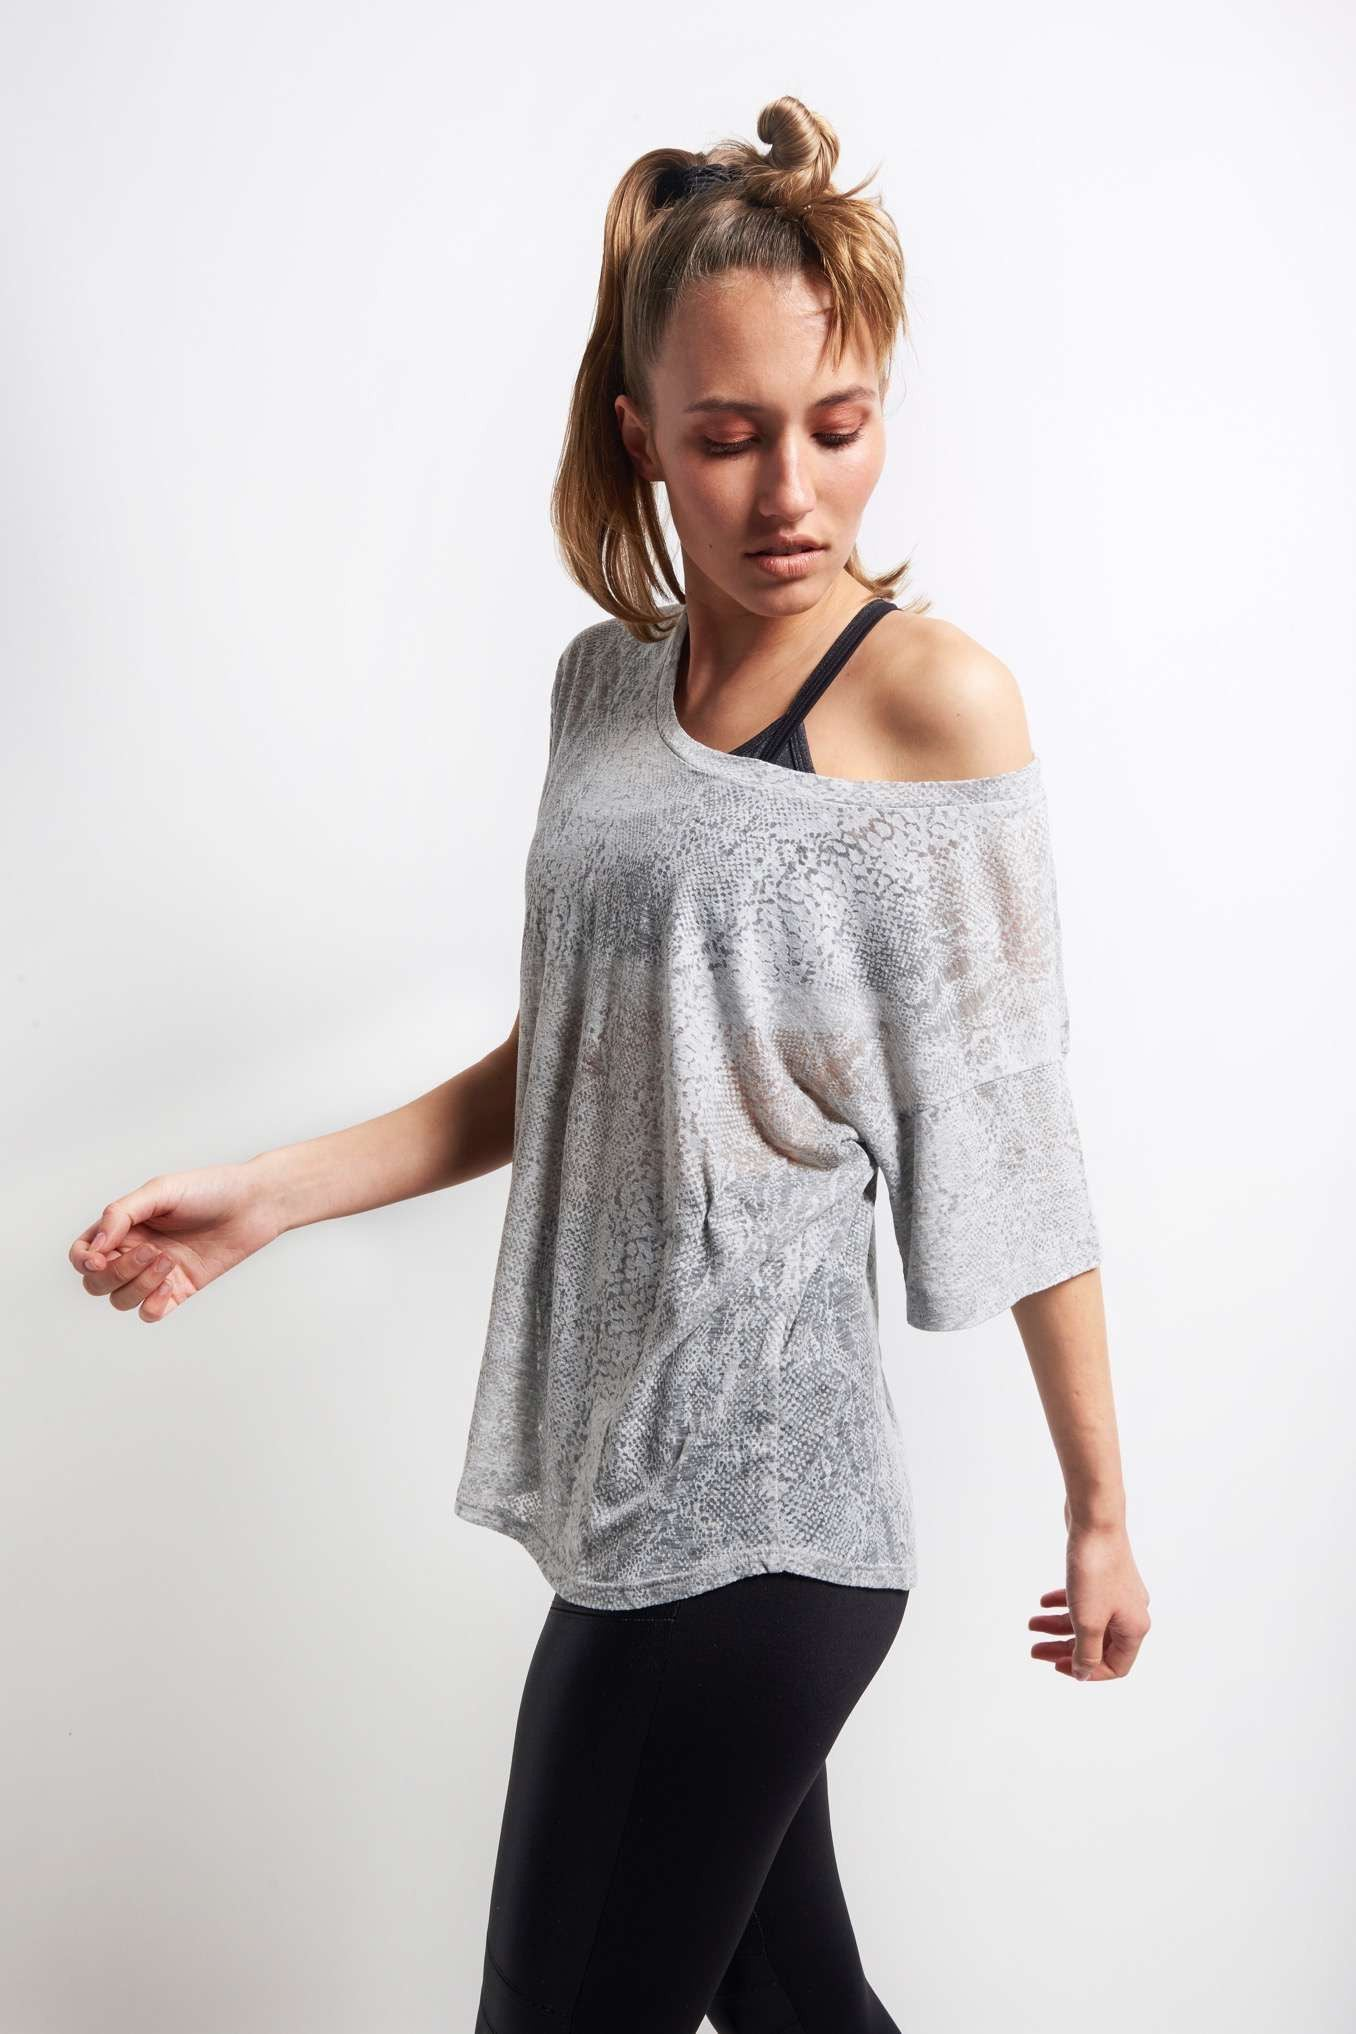 Blue Life Fit Side Slit Best Bum Tee - Grey Snake image 1 - The Sports Edit